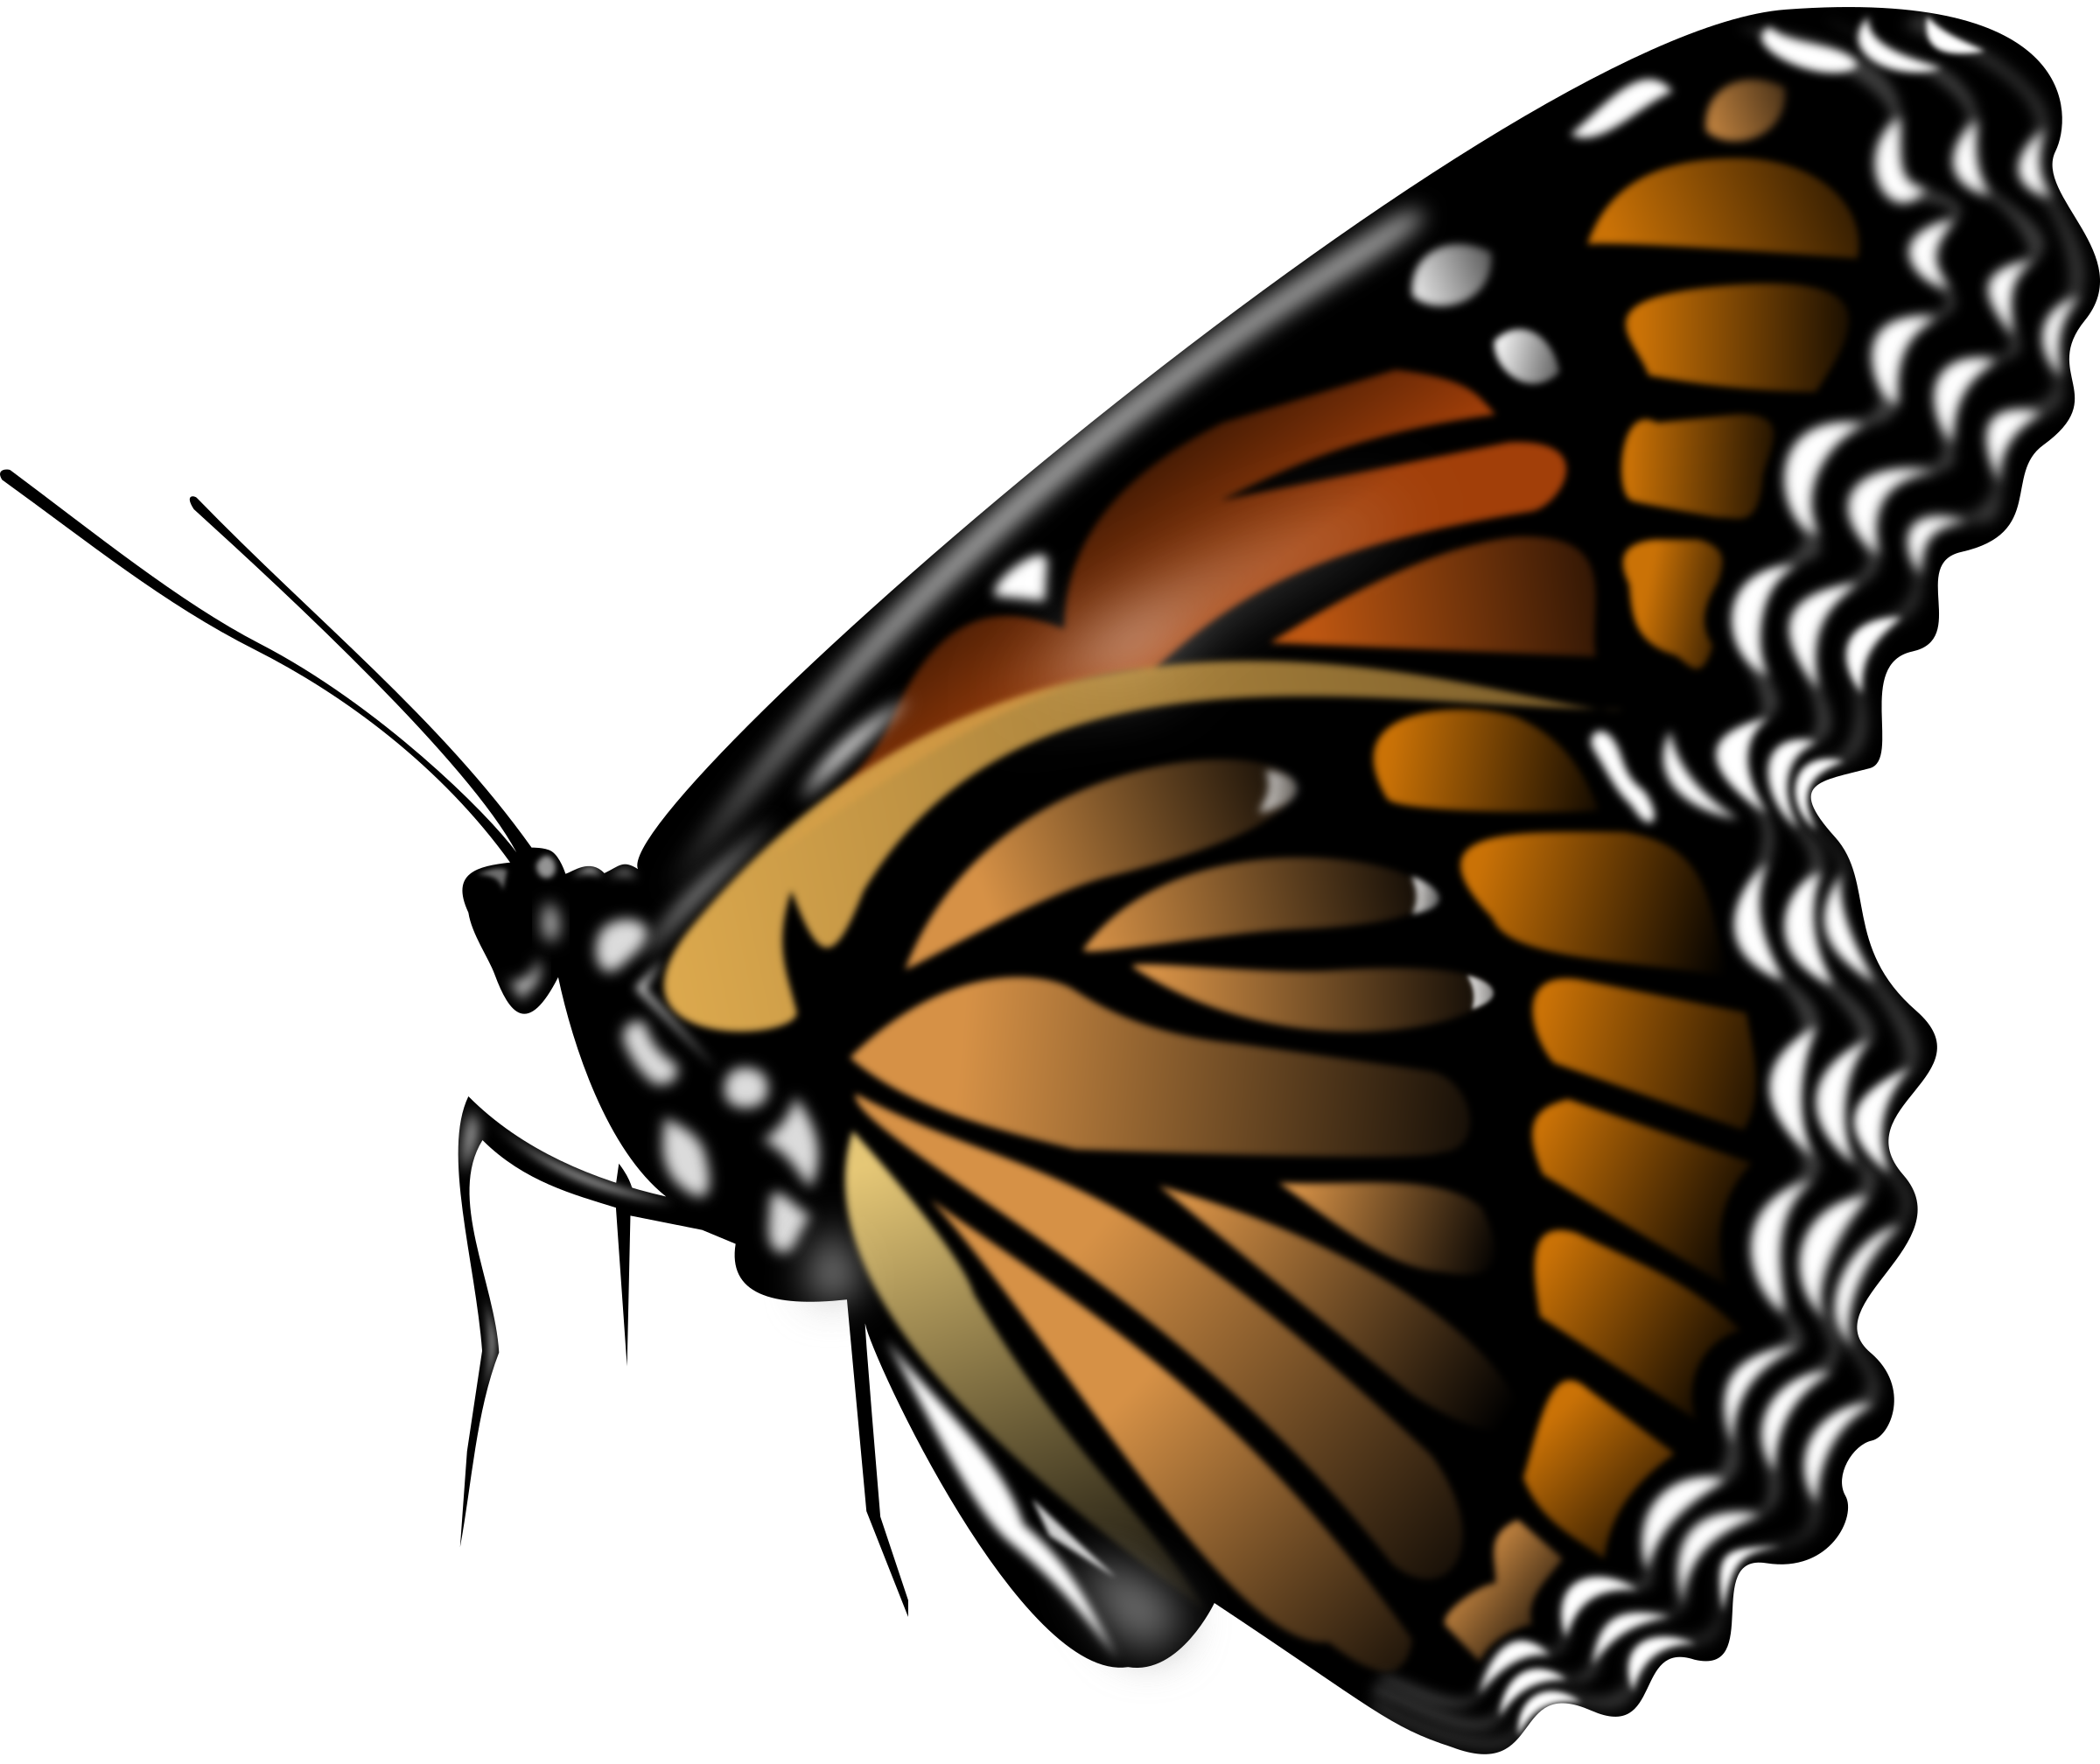 Monarch Butterfly by Merlin2525